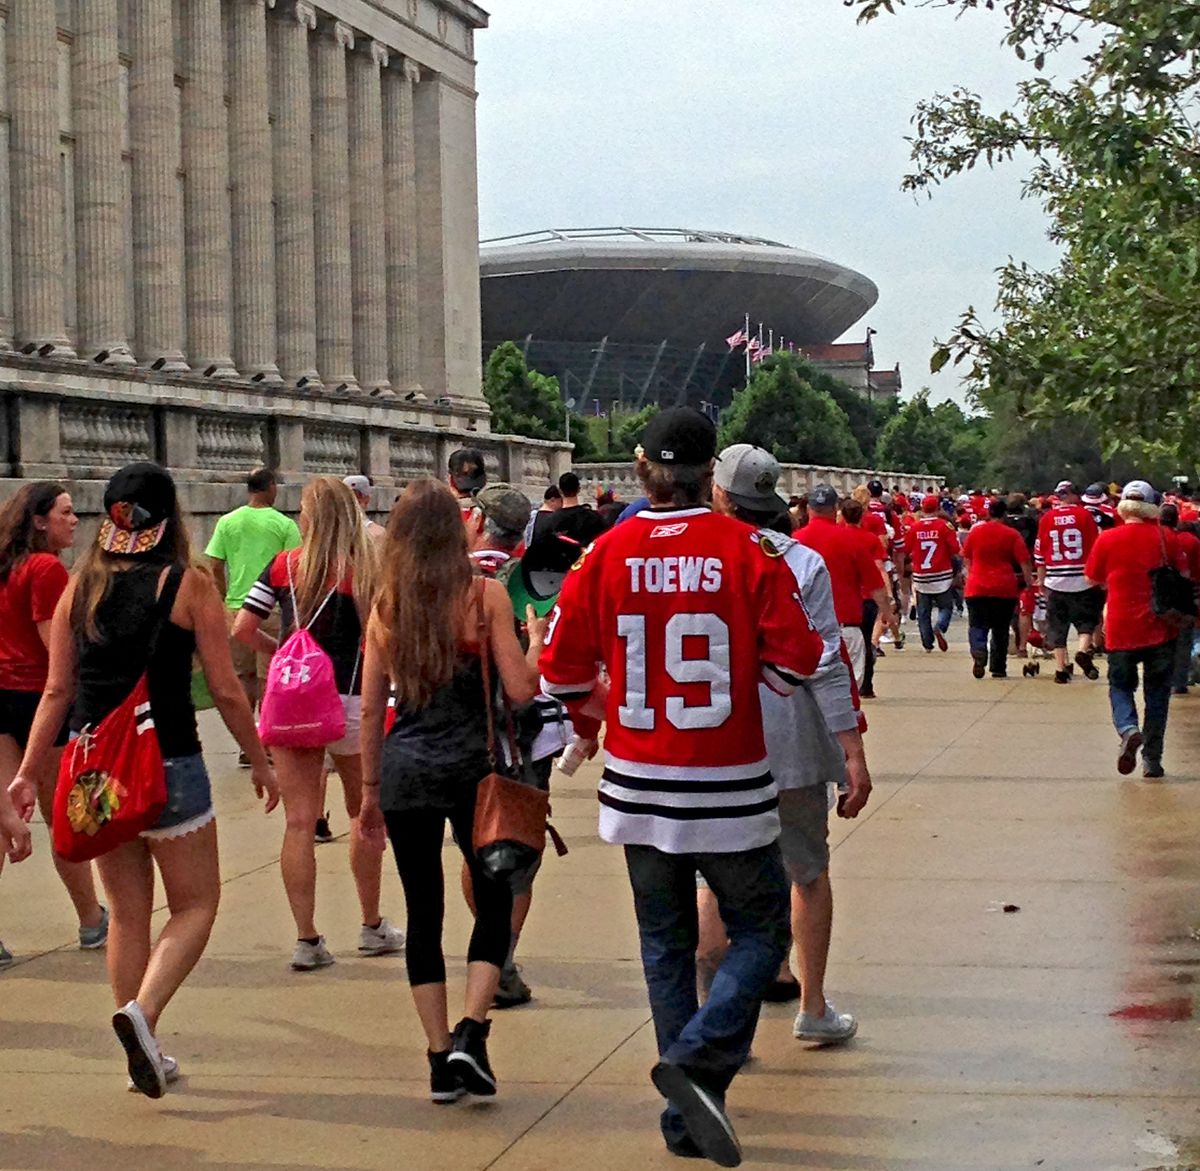 After the rains subsided, the crowd begins heading toward Soldier Field. | Jordyn Holman/For the Sun-Times